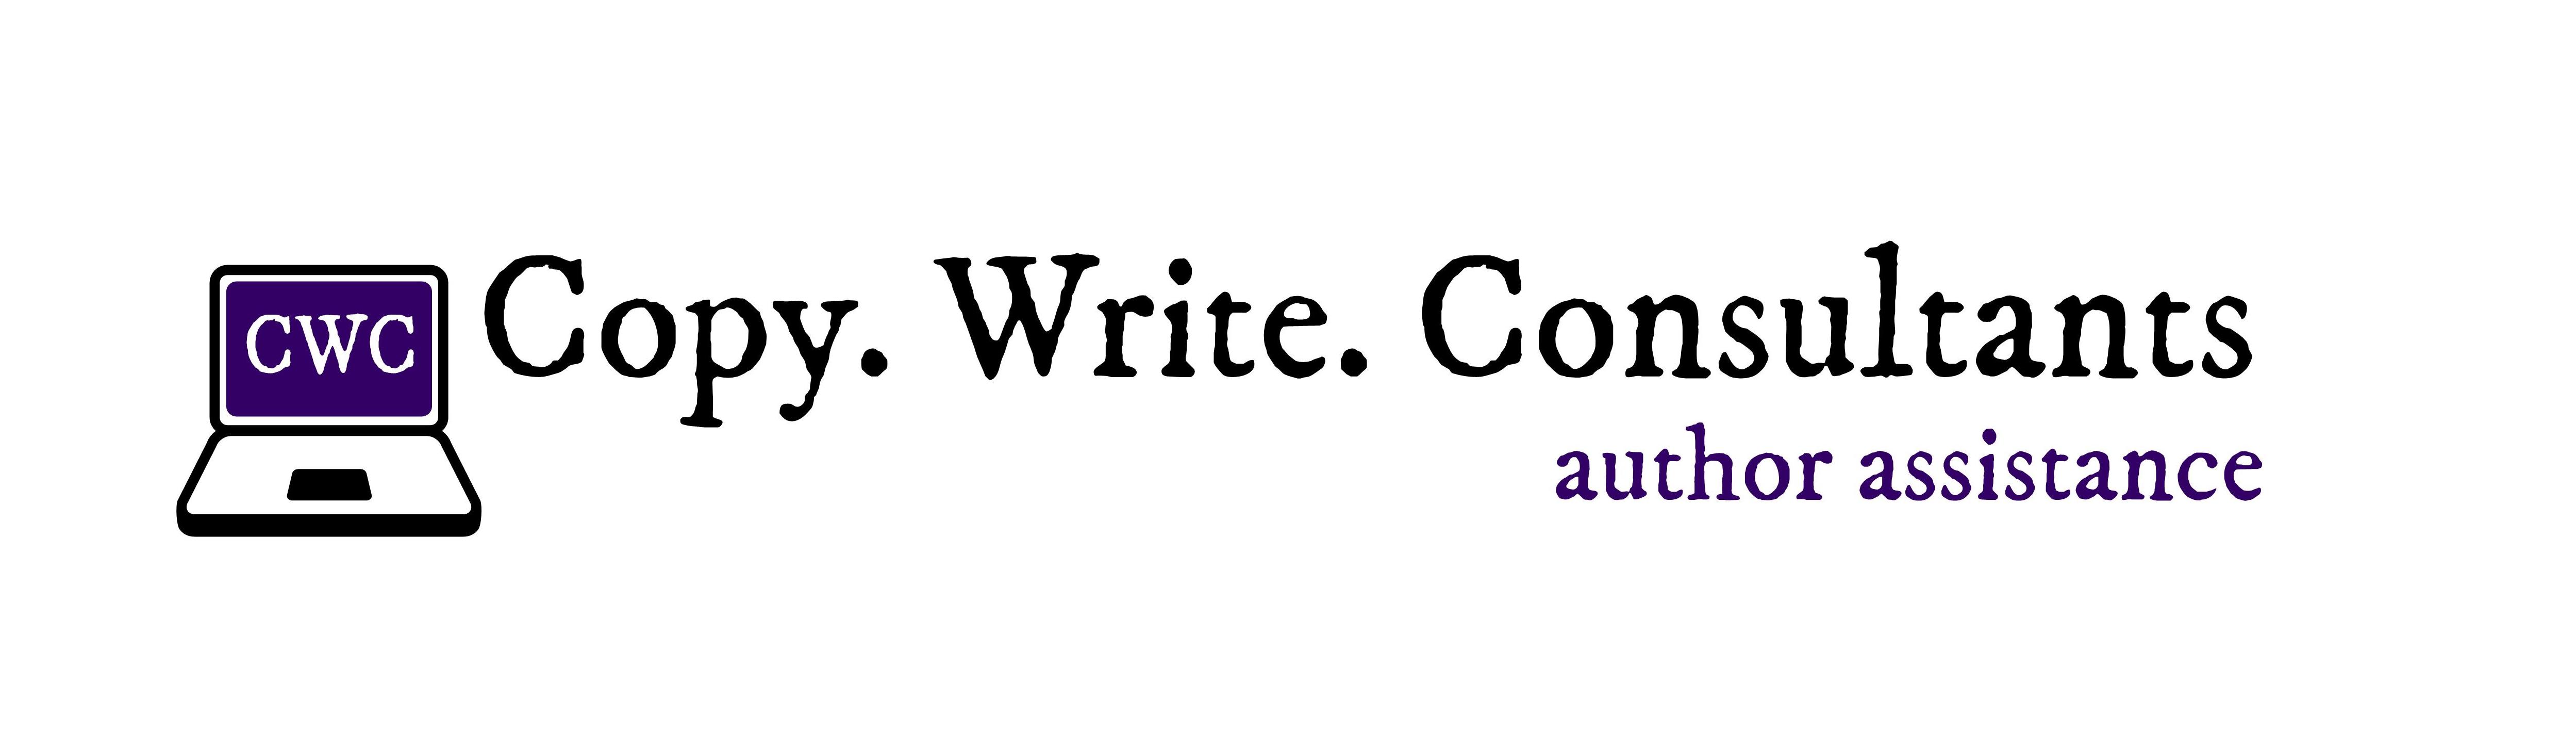 Literary Agent & Publisher Research - Copy  Write  Consultants